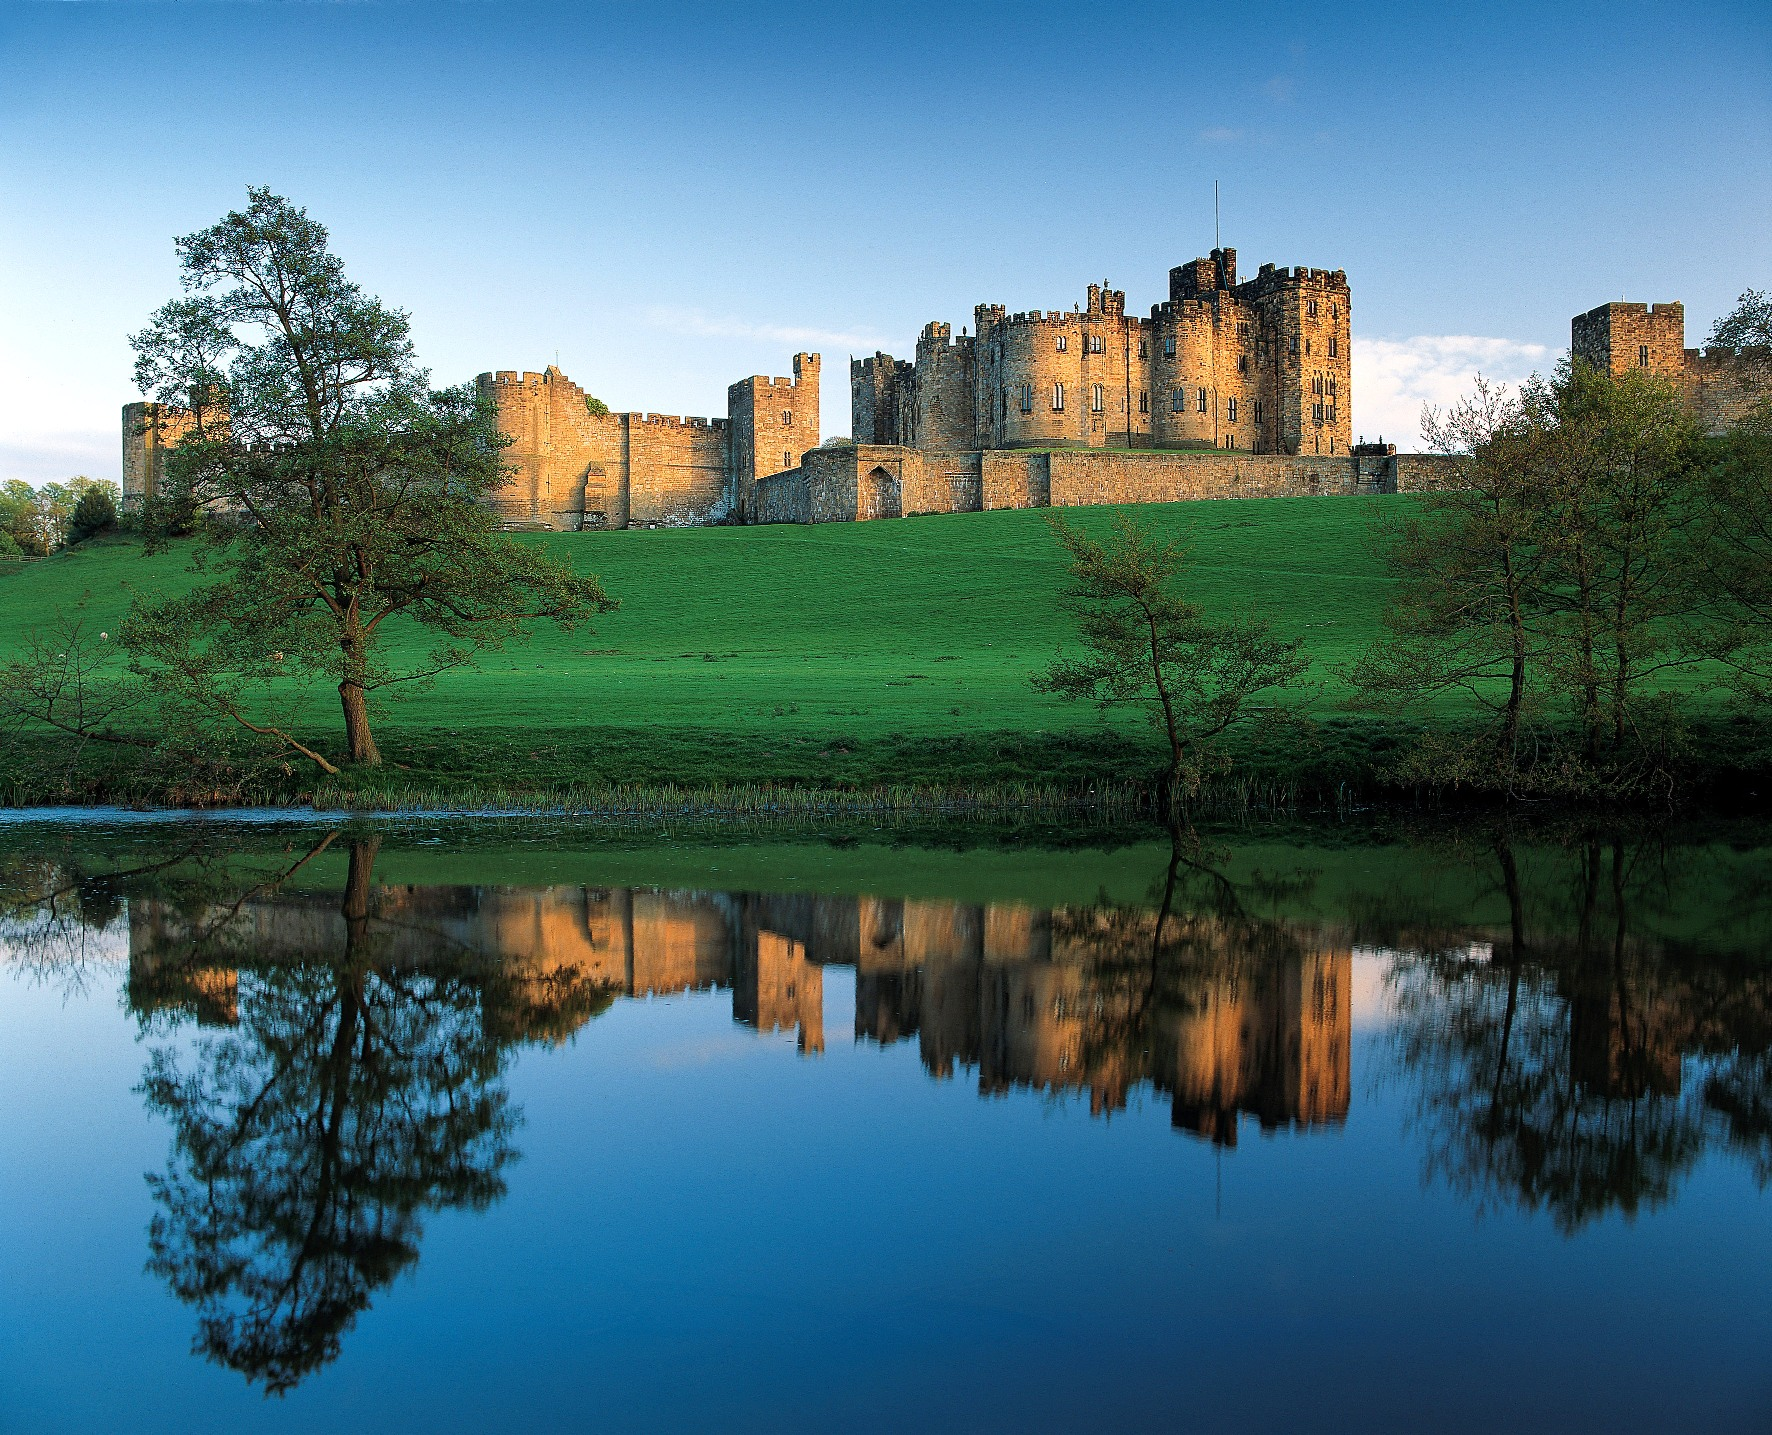 Castle reflected in the River Aln